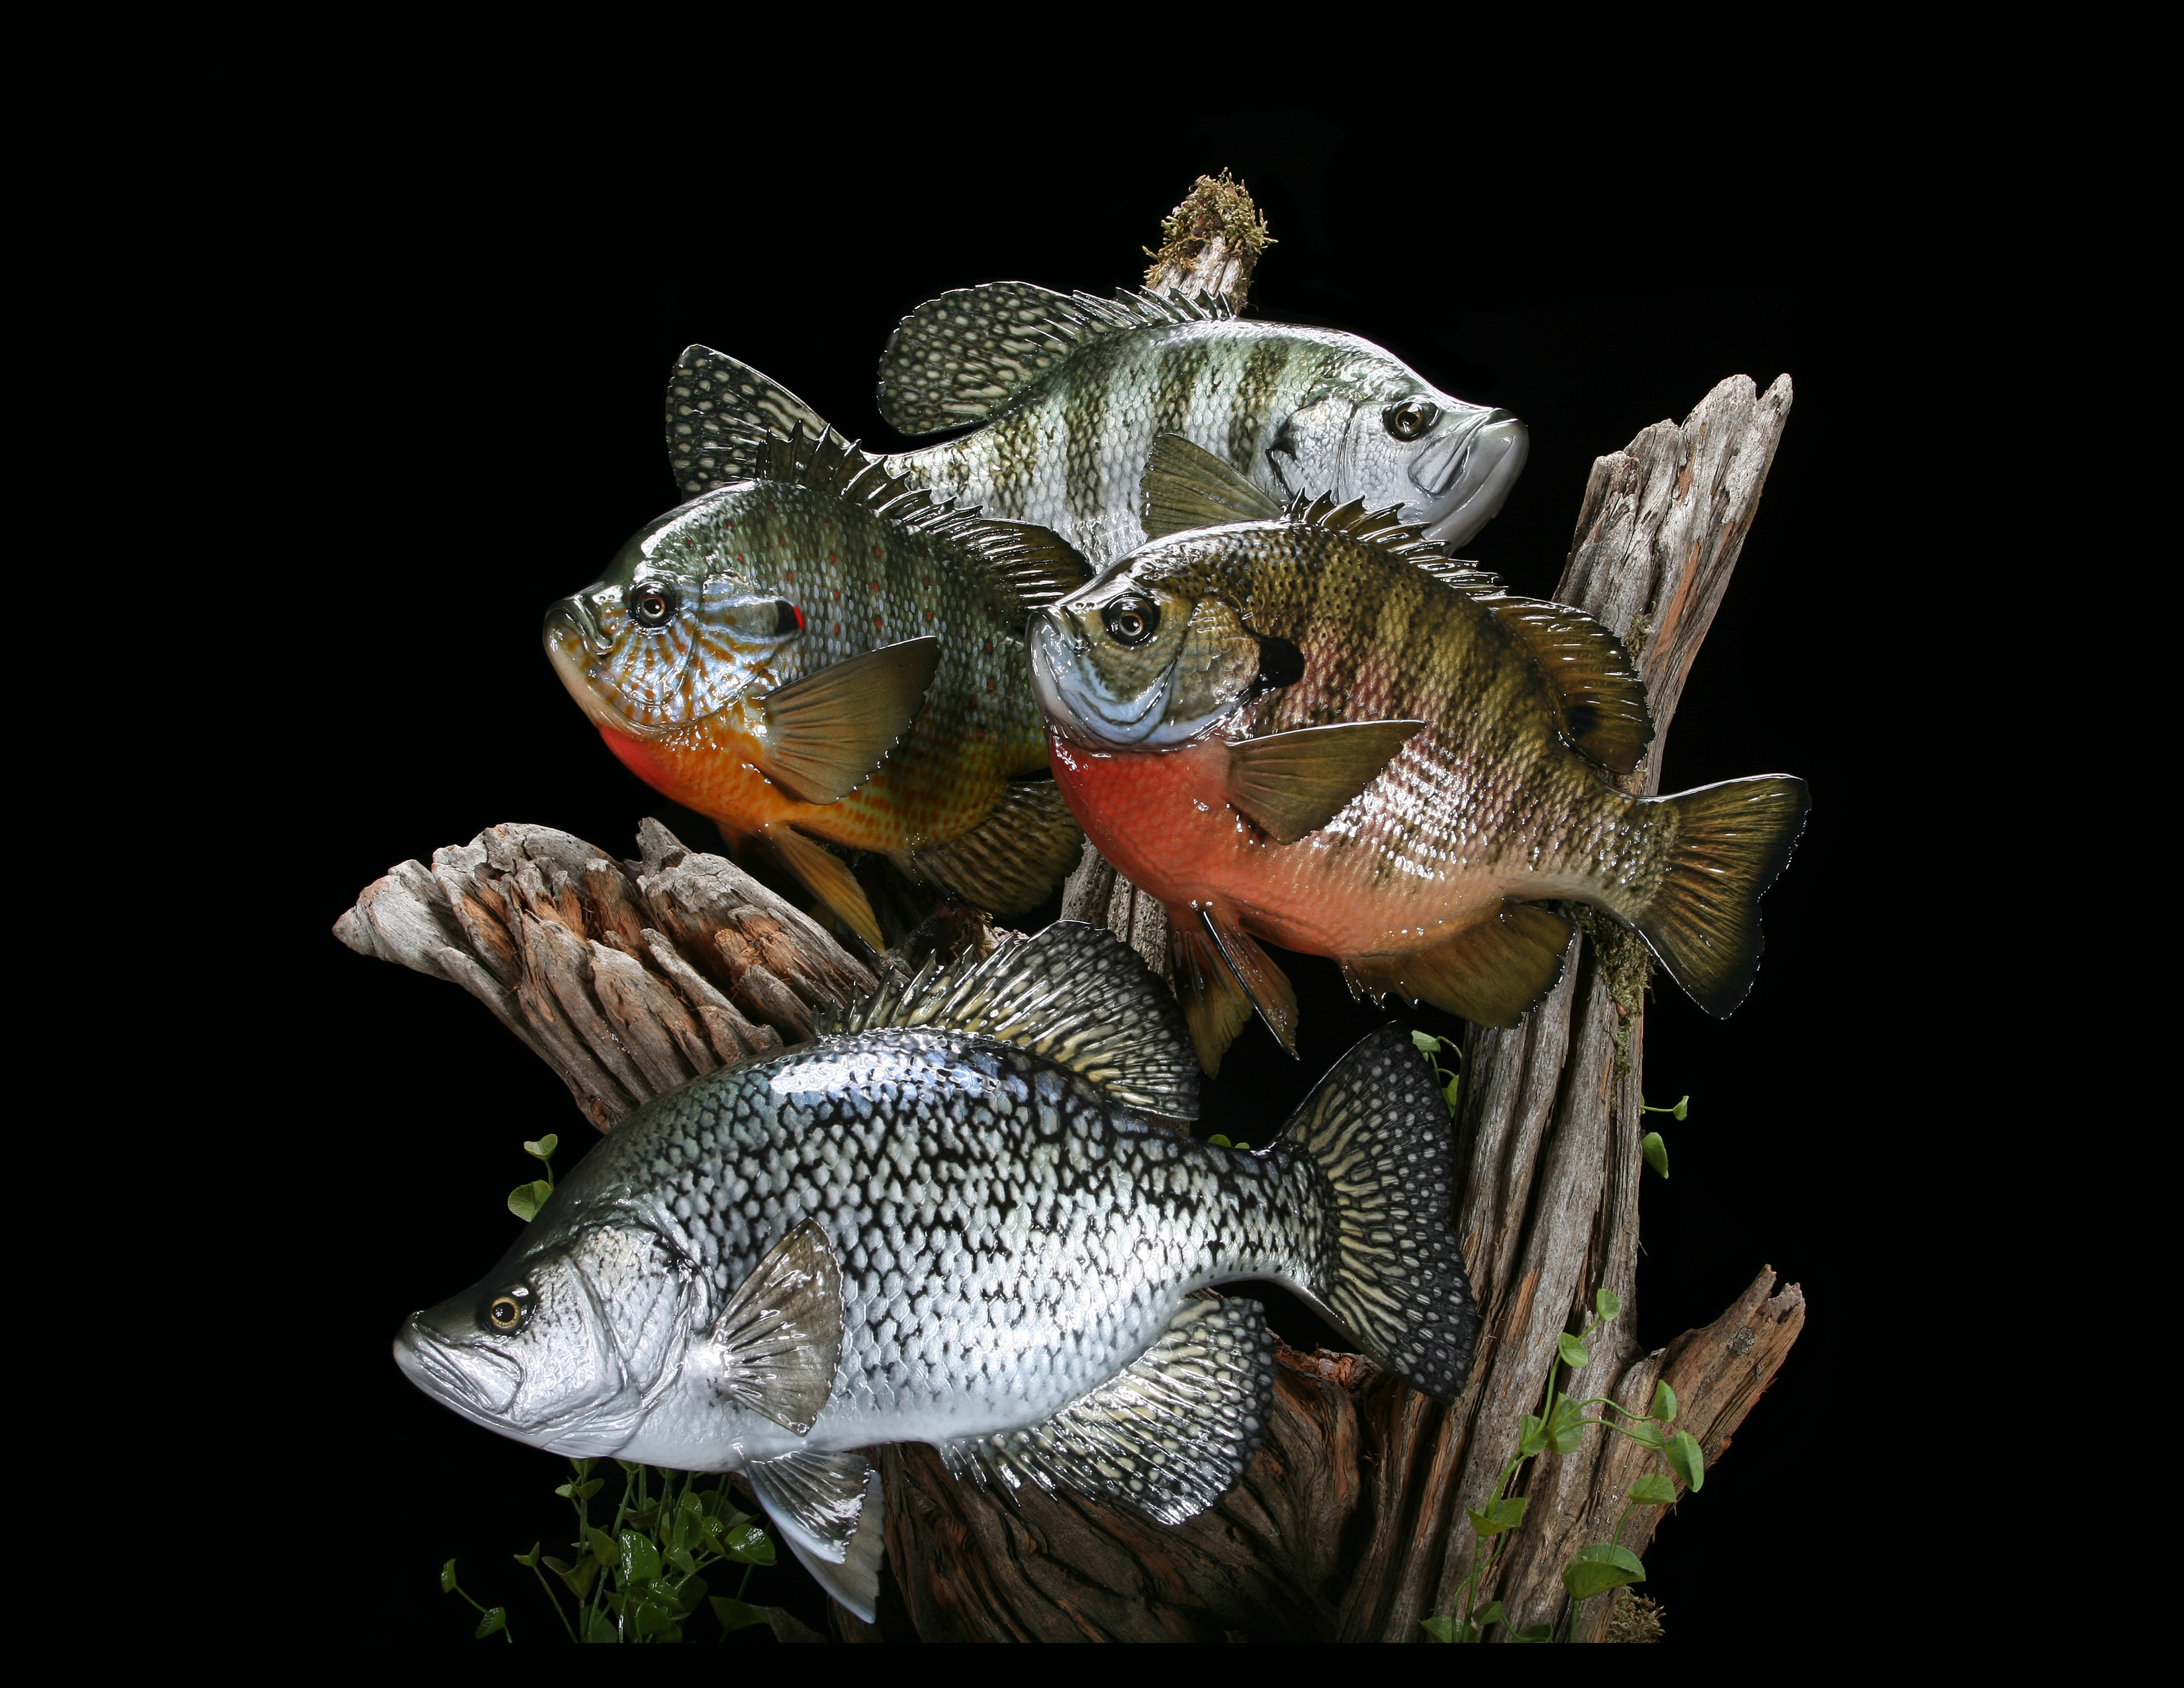 Bluegill, Pumpkinseed Sunfish and Black Crappie